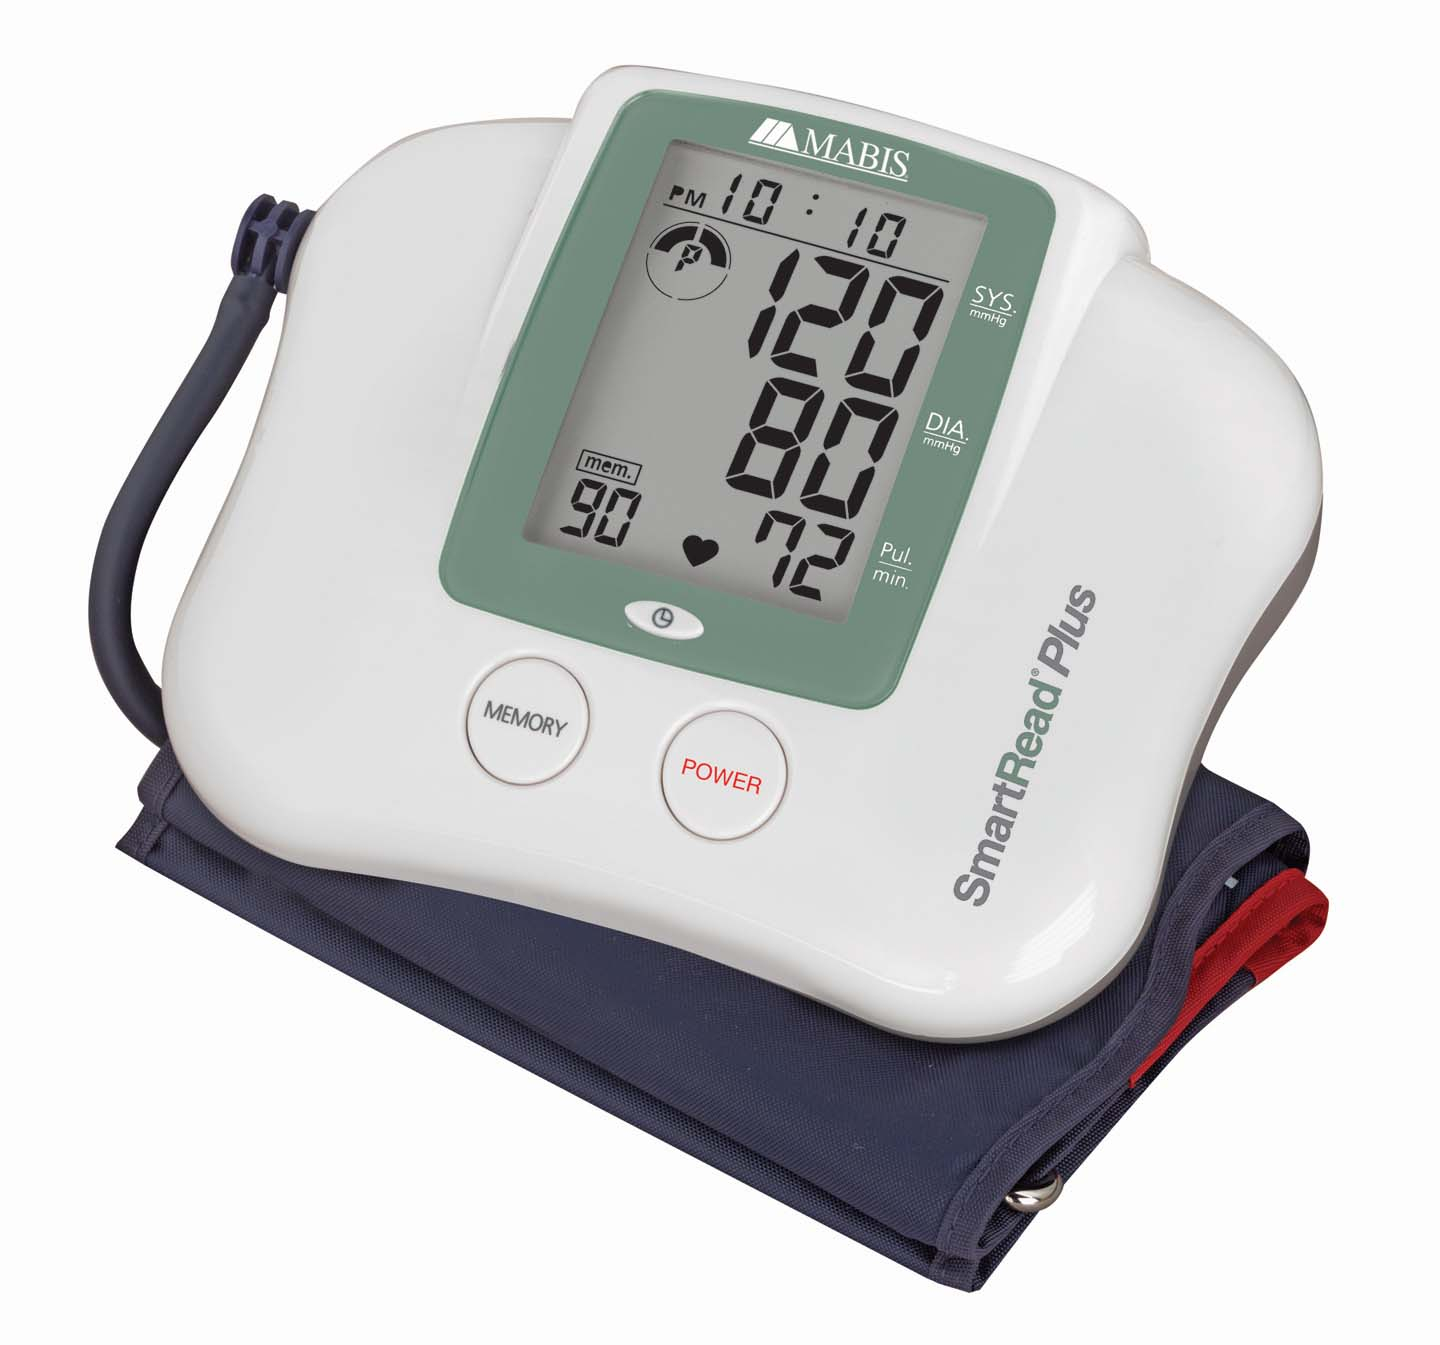 smartread plus digital blood pressure monitor with memory adult 04 310 001 lr ... a cardiac trace showing normal sinus rhythm, blood pressure and pulse